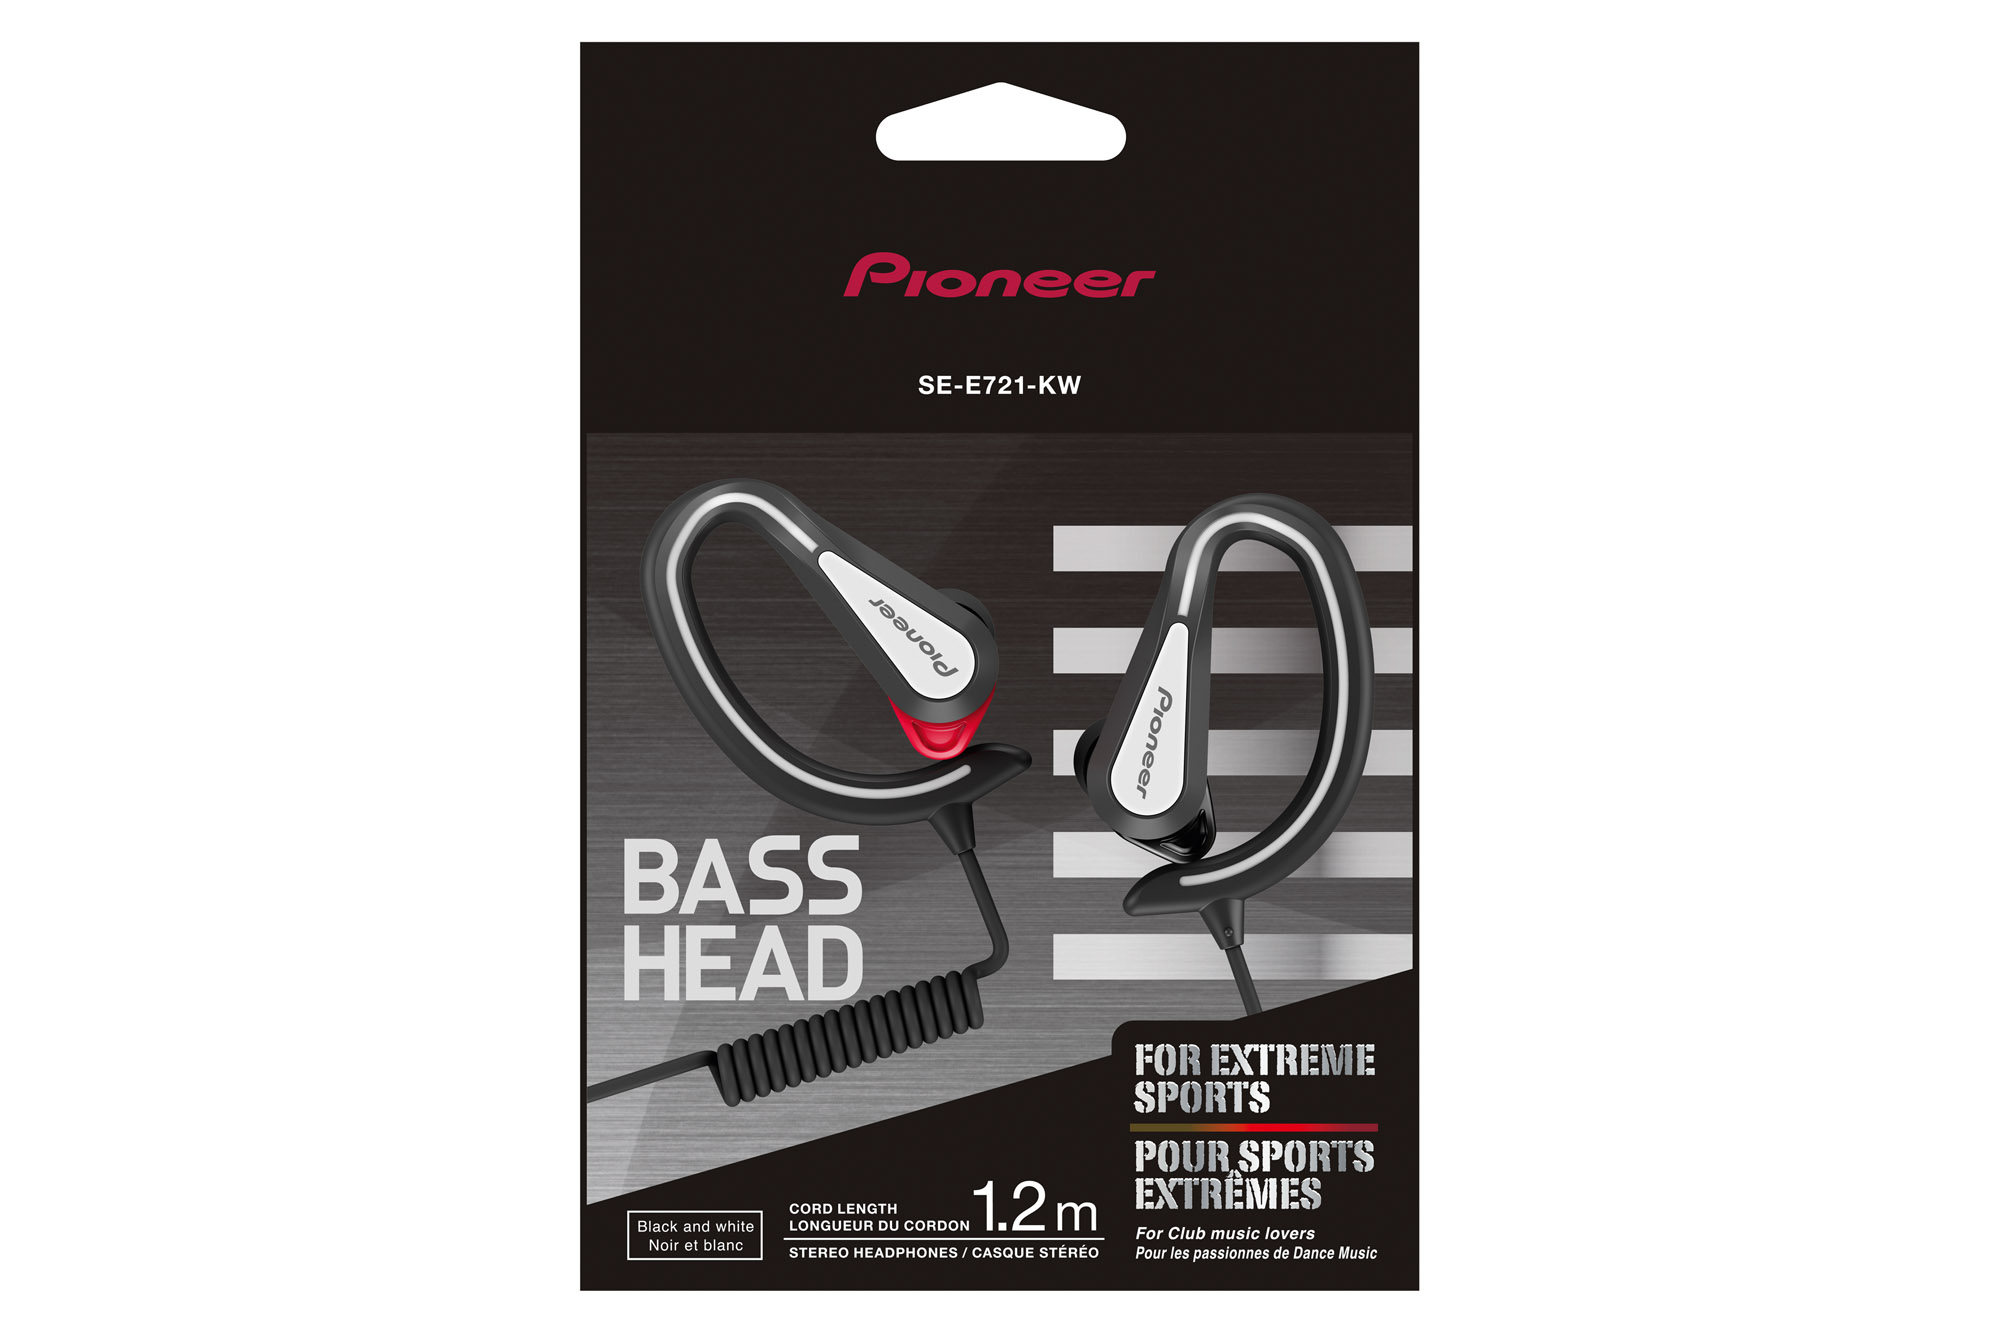 Pioneer Sports Headphones